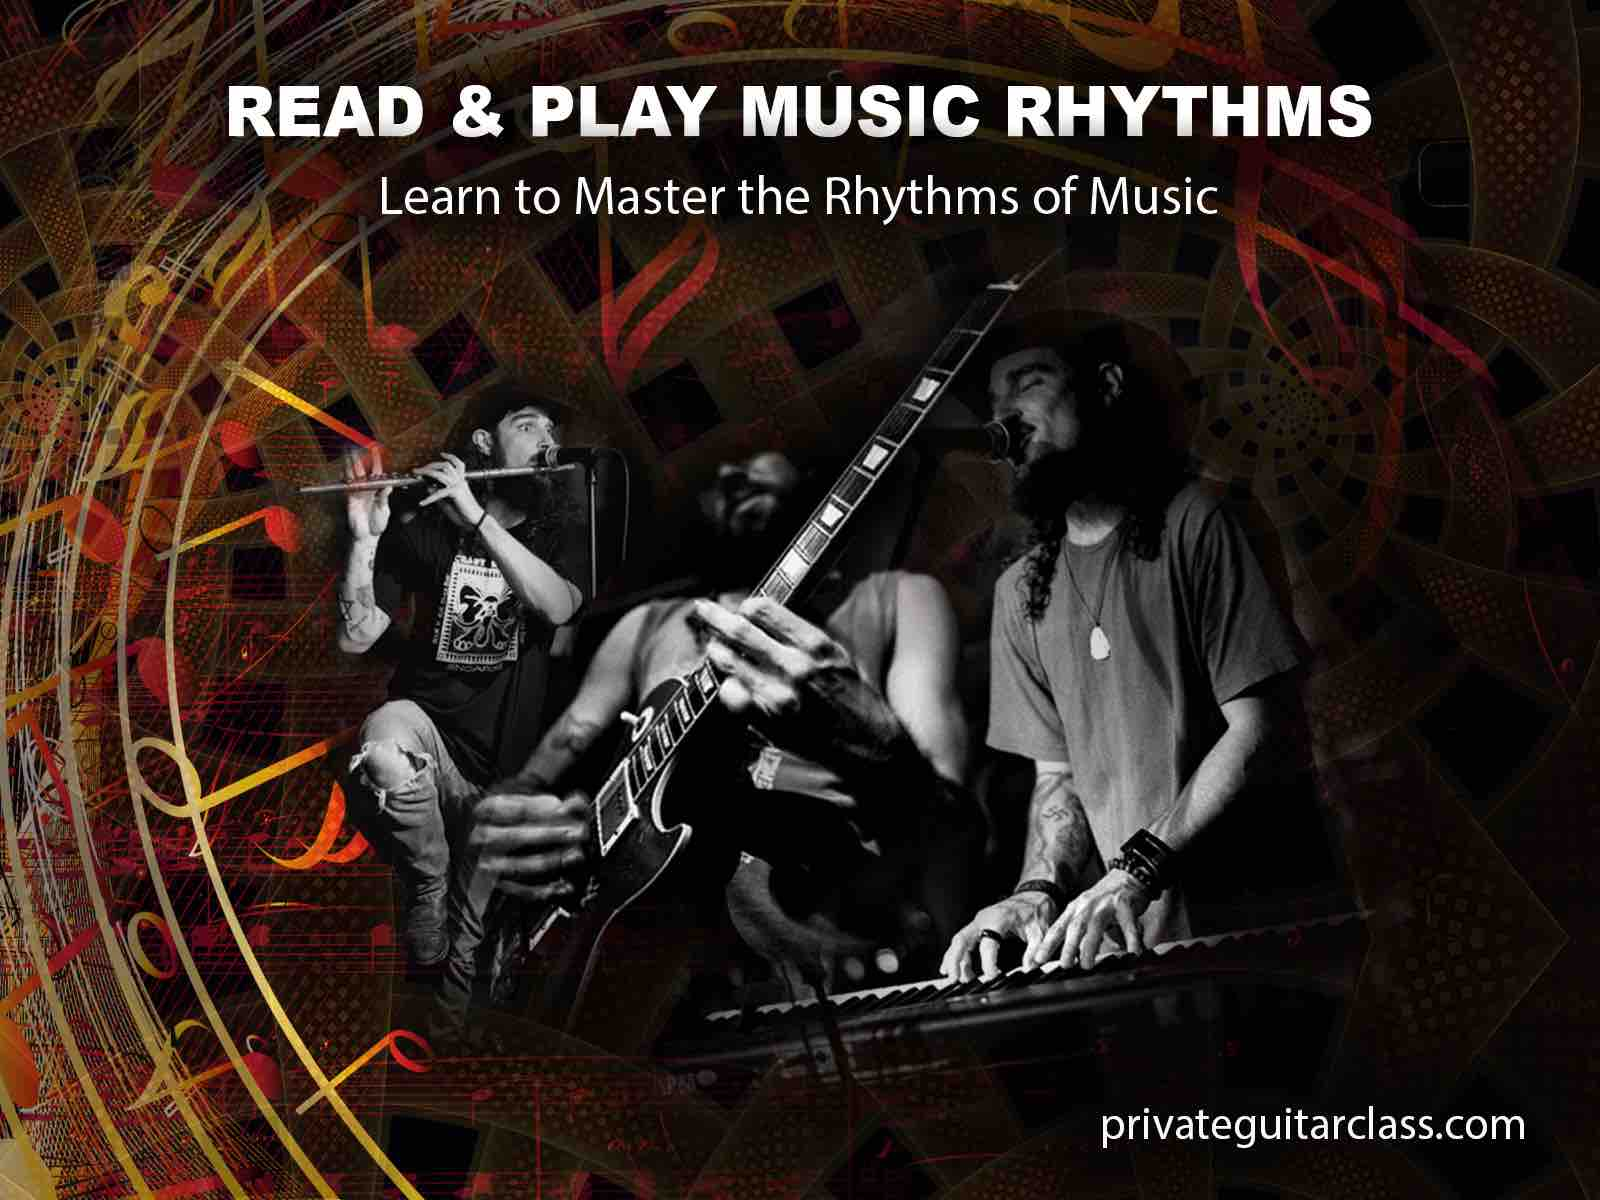 Learn How To Read & Play Music Rhythms